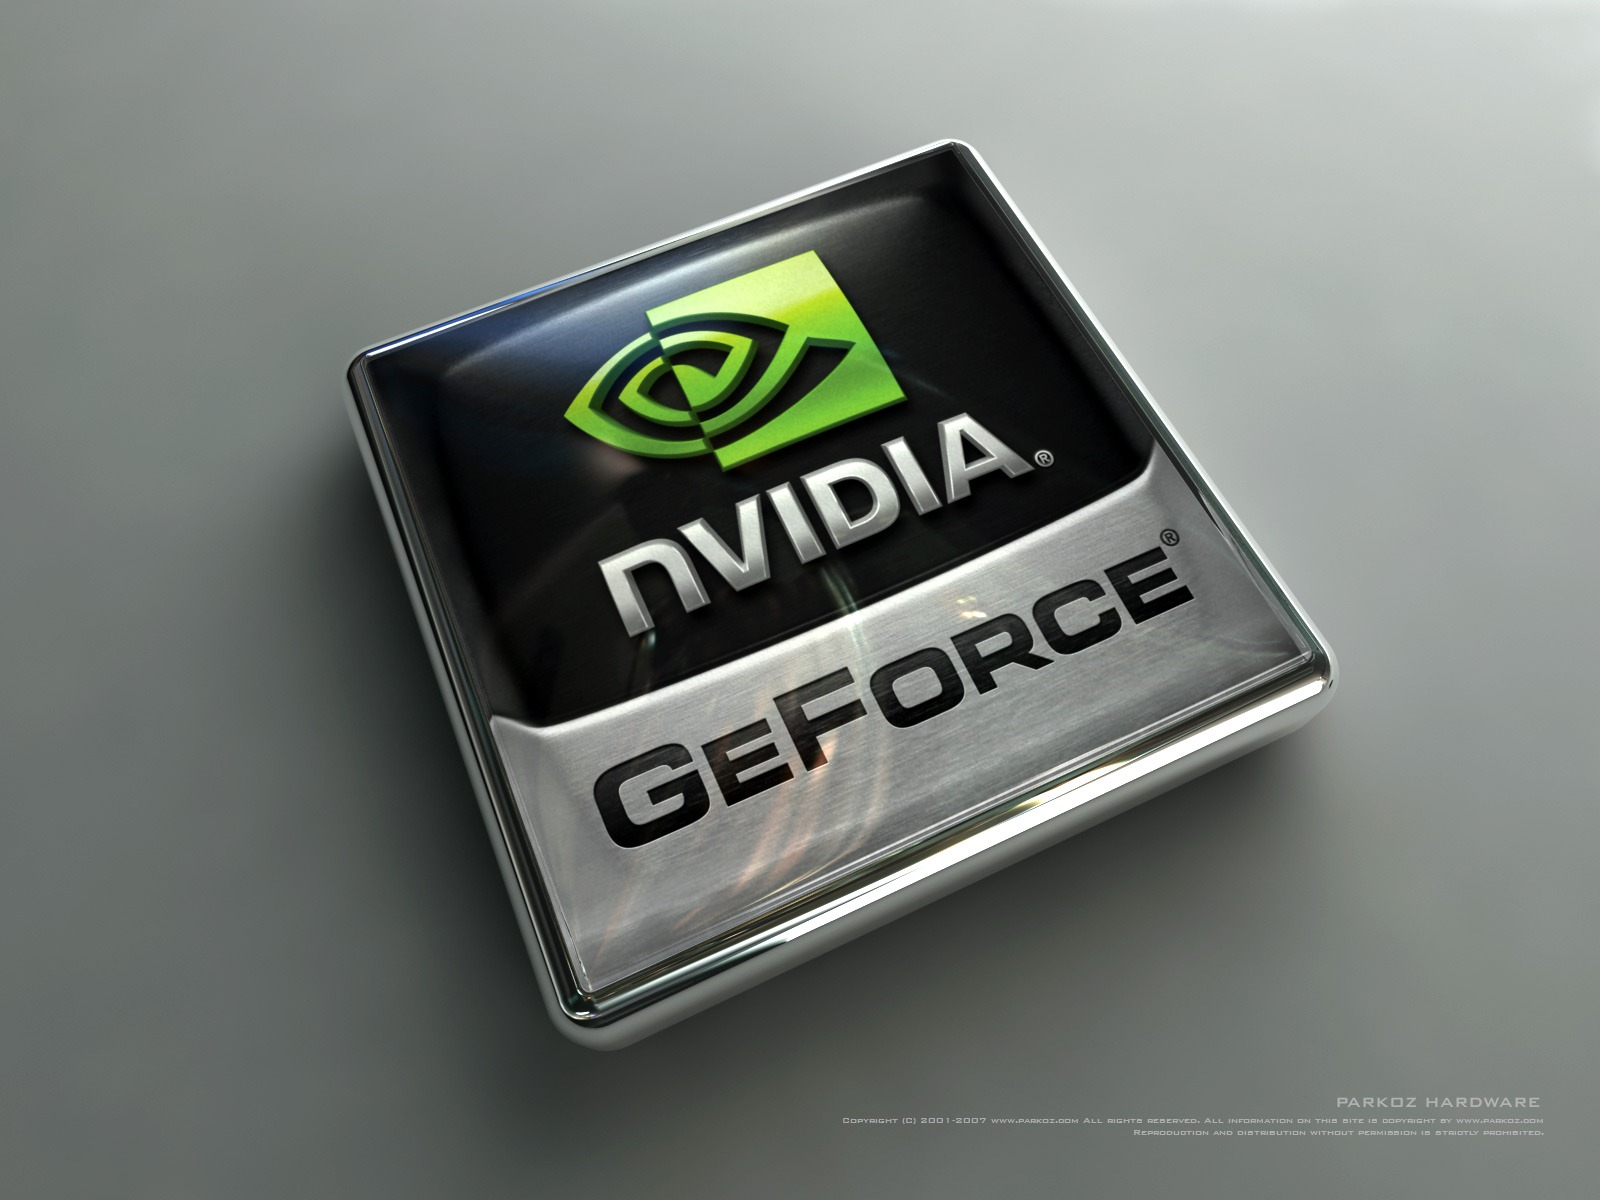 T 233 l 233 charger nvidia driver for windows 8 consumer preview